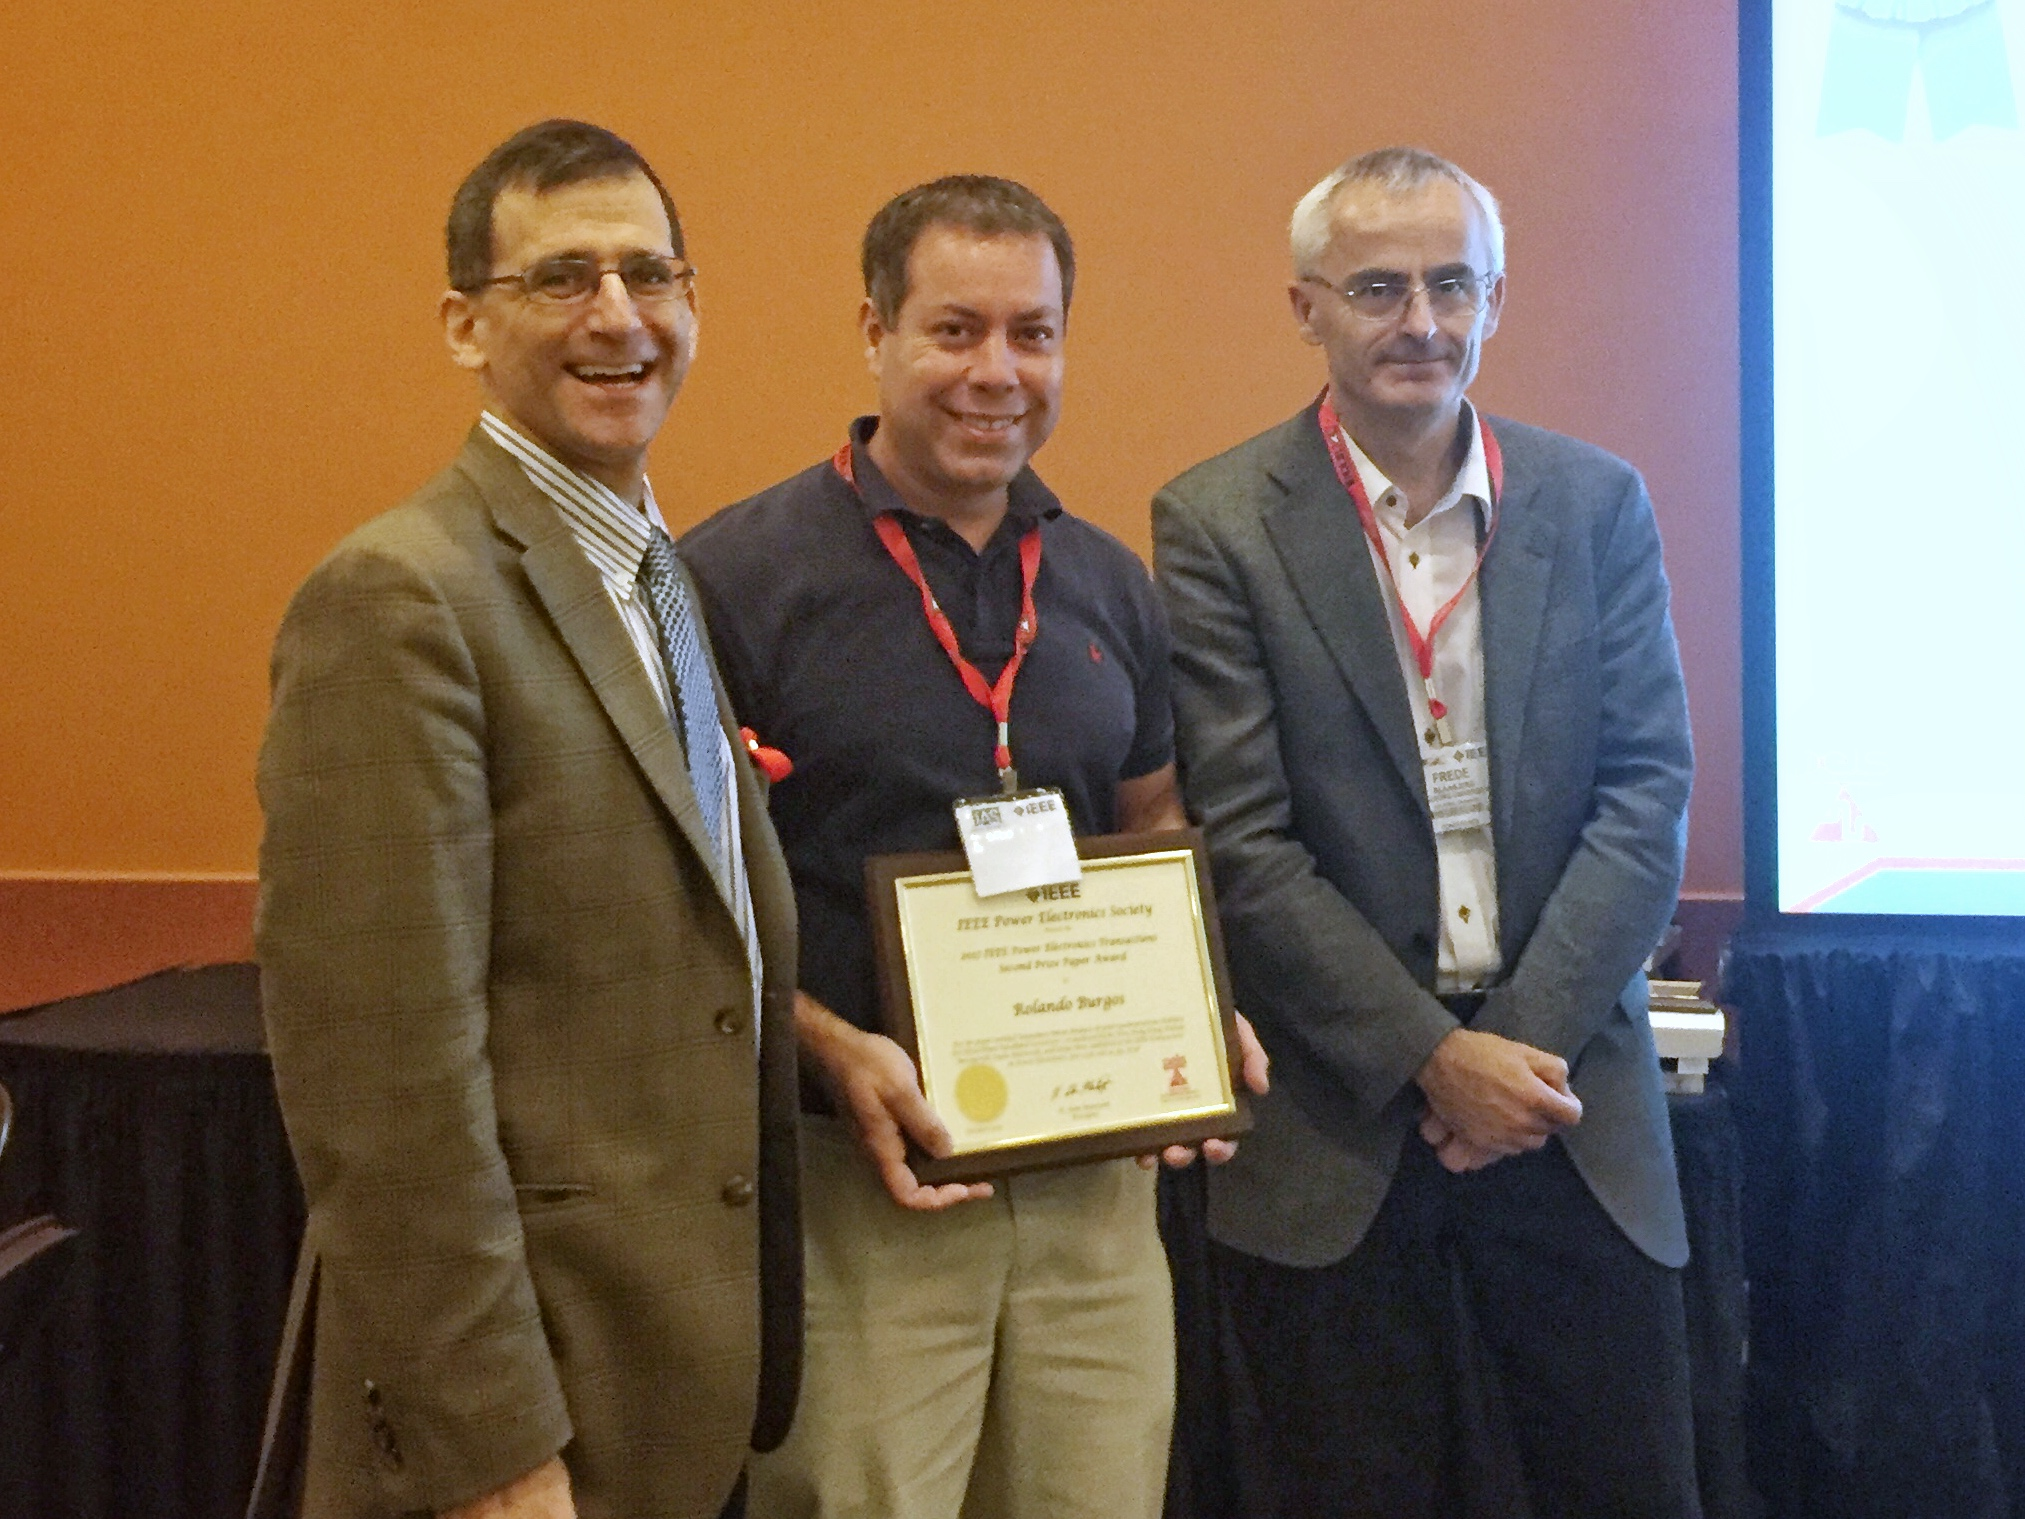 CPES Professor Dr. Rolando Burgos receives Second Place in the TPEL Prize Paper Award.